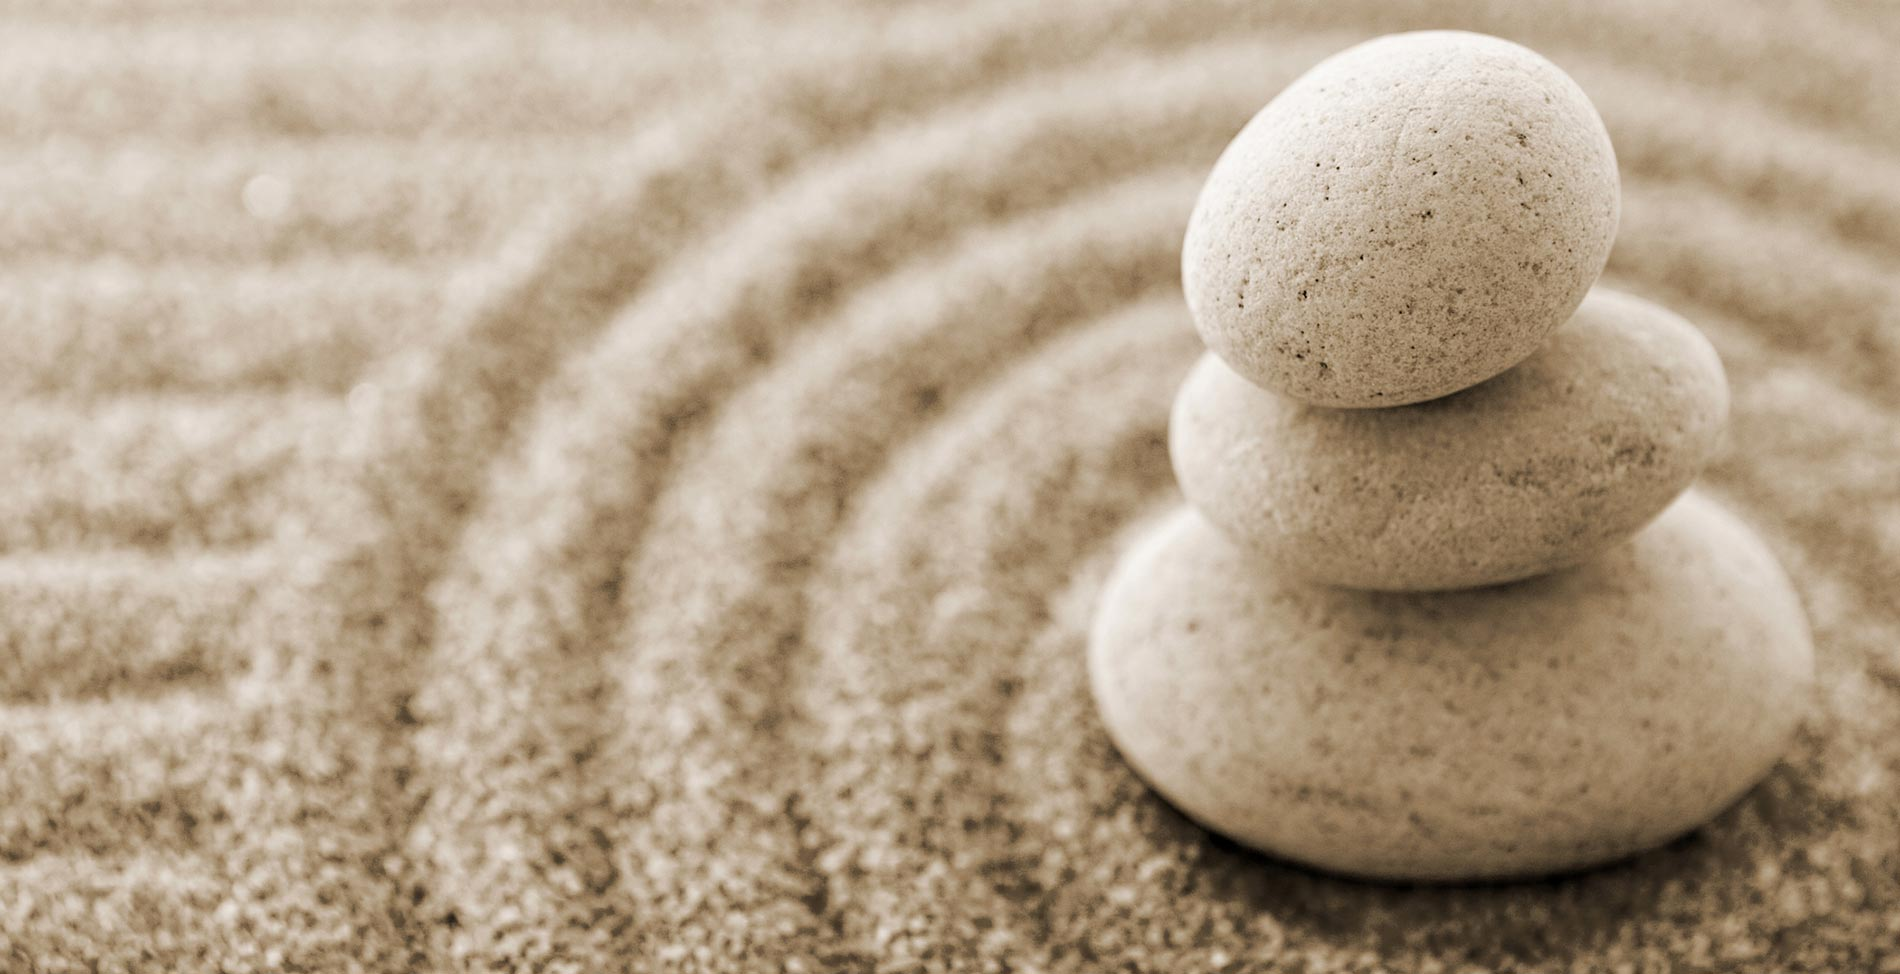 How to deal with stress through minfulness